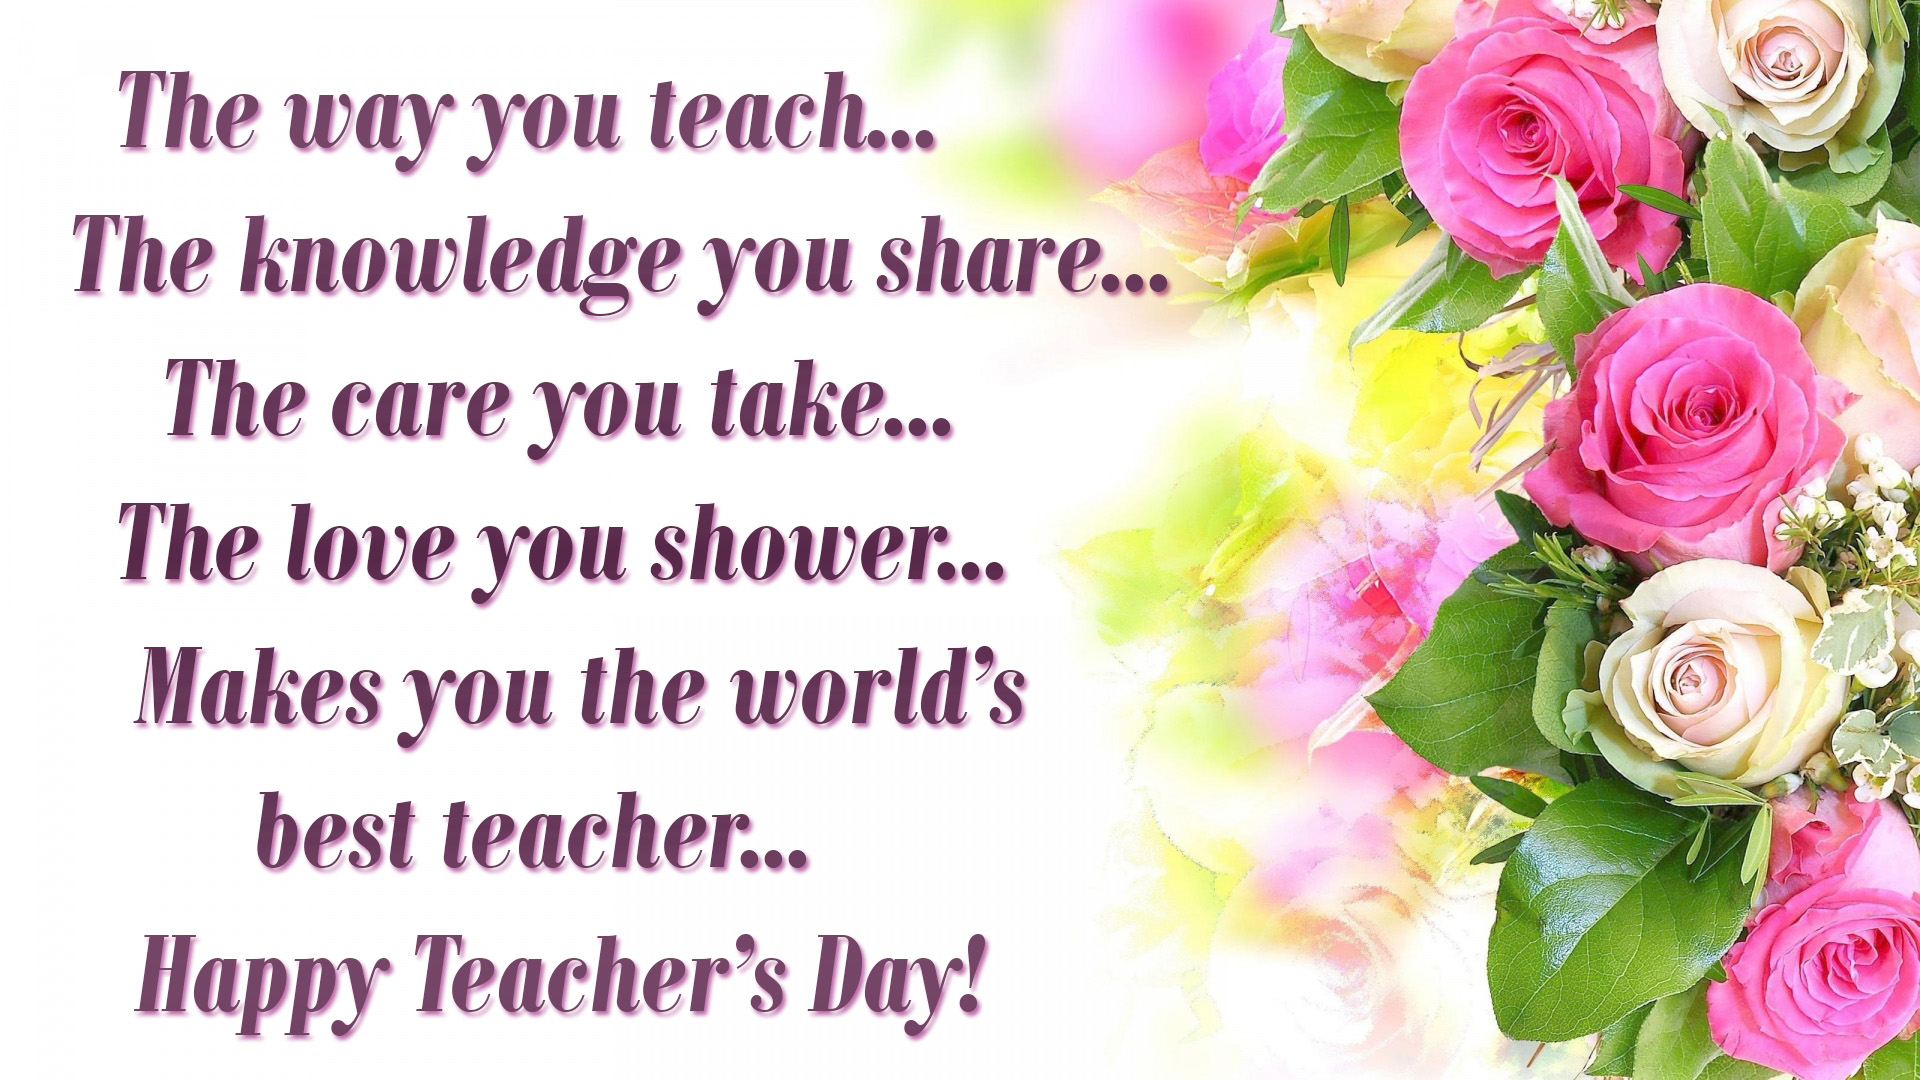 Happy teachers day wishes 2018 images teachers day 2018 thecheapjerseys Gallery